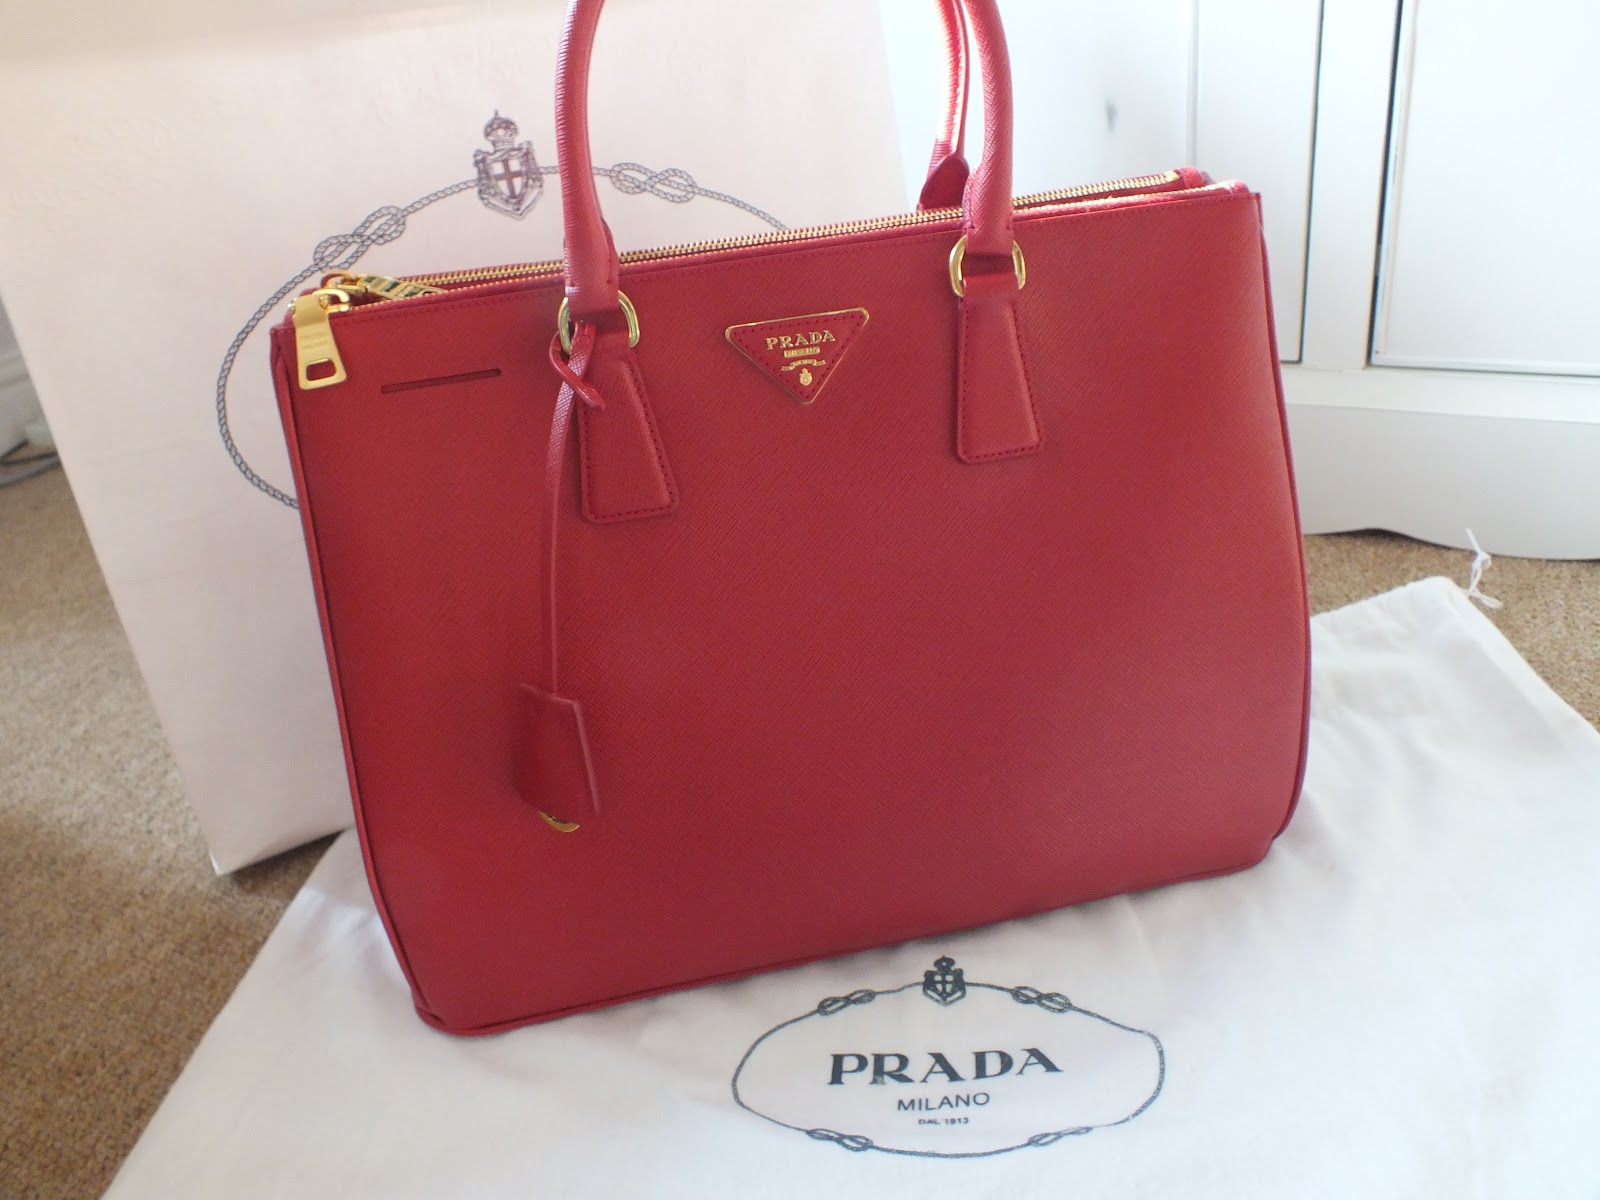 588da719953a Prada London Selfridges Bags | Stanford Center for Opportunity ...